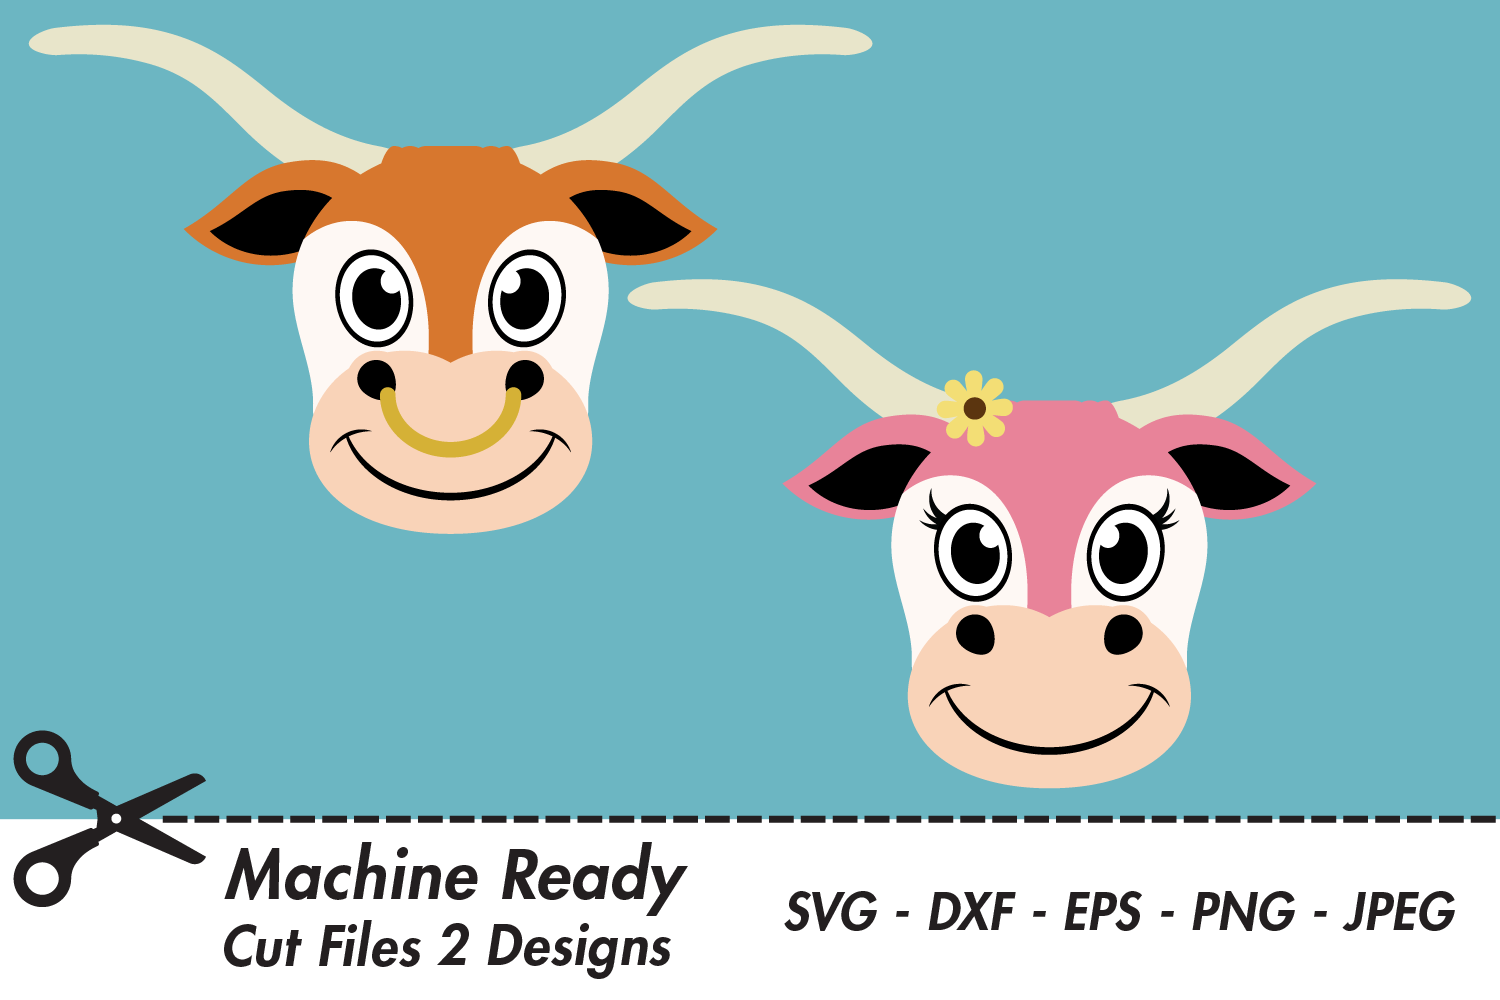 Download Free Cute Longhorn Faces Graphic By Captaincreative Creative Fabrica for Cricut Explore, Silhouette and other cutting machines.